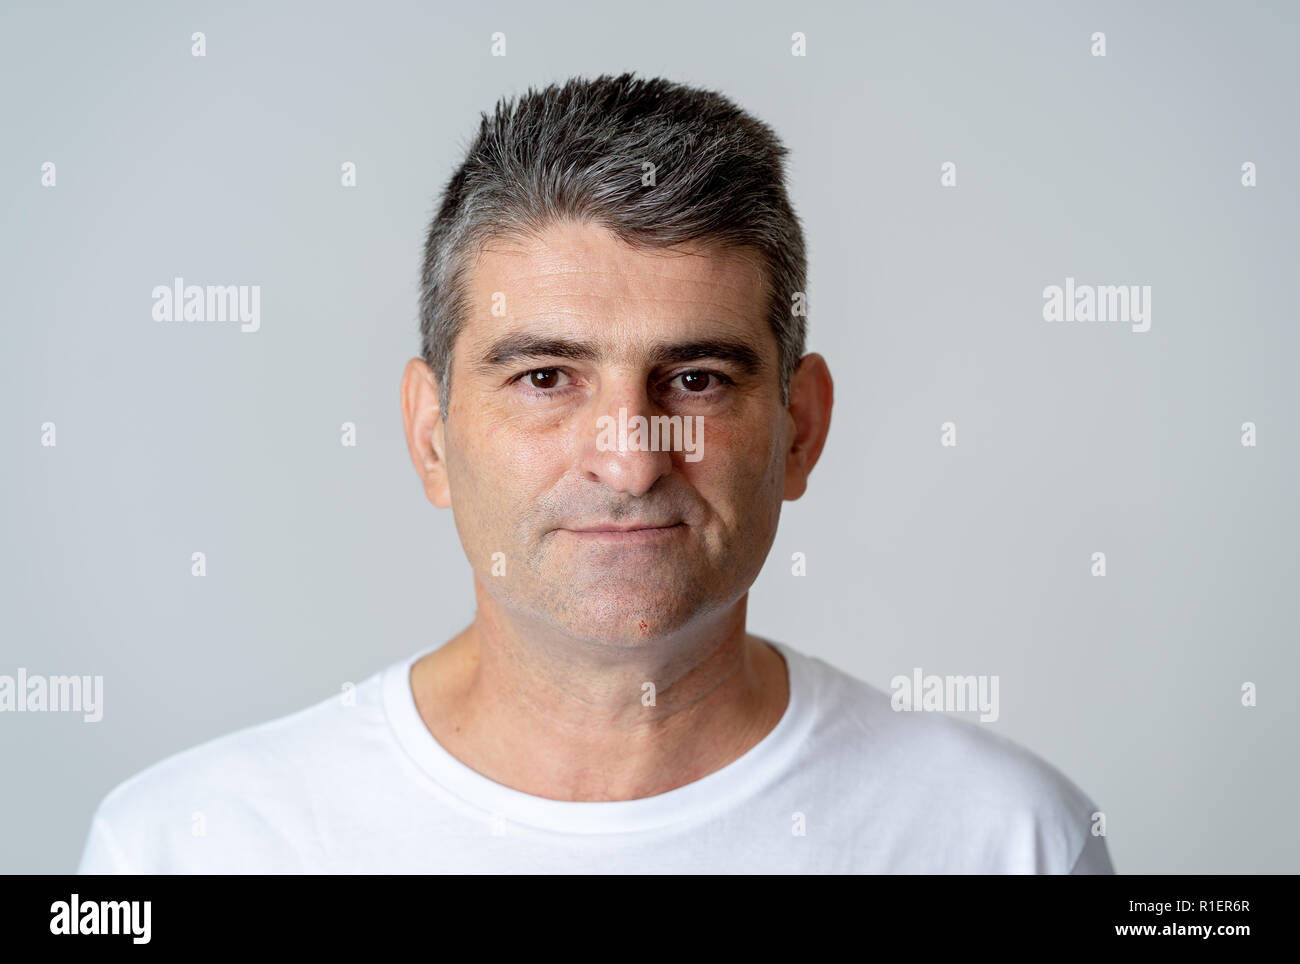 Portrait of a attractive mature man looking neutral relaxed and serious in facial expressions human emotions isolated on grey blue background. - Stock Image